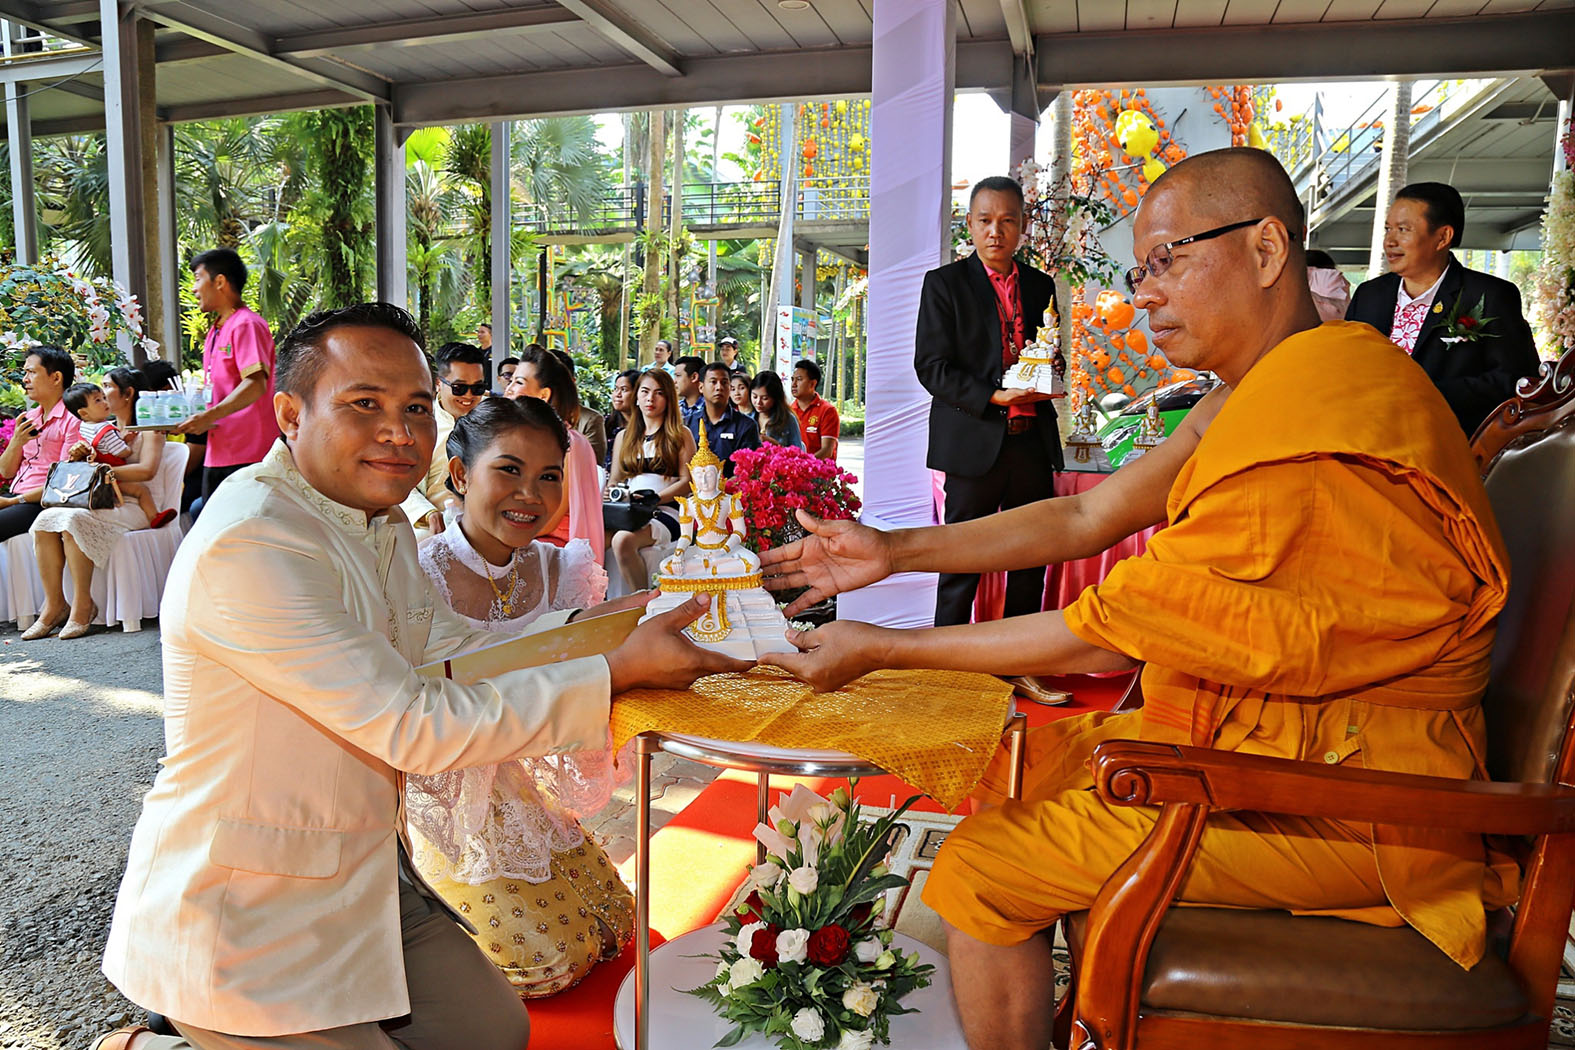 Phra Khru Kasemkithisopon from Wat Samakeebanpoth conducts a religious blessing ceremony a Nong Nooch Tropical Garden.